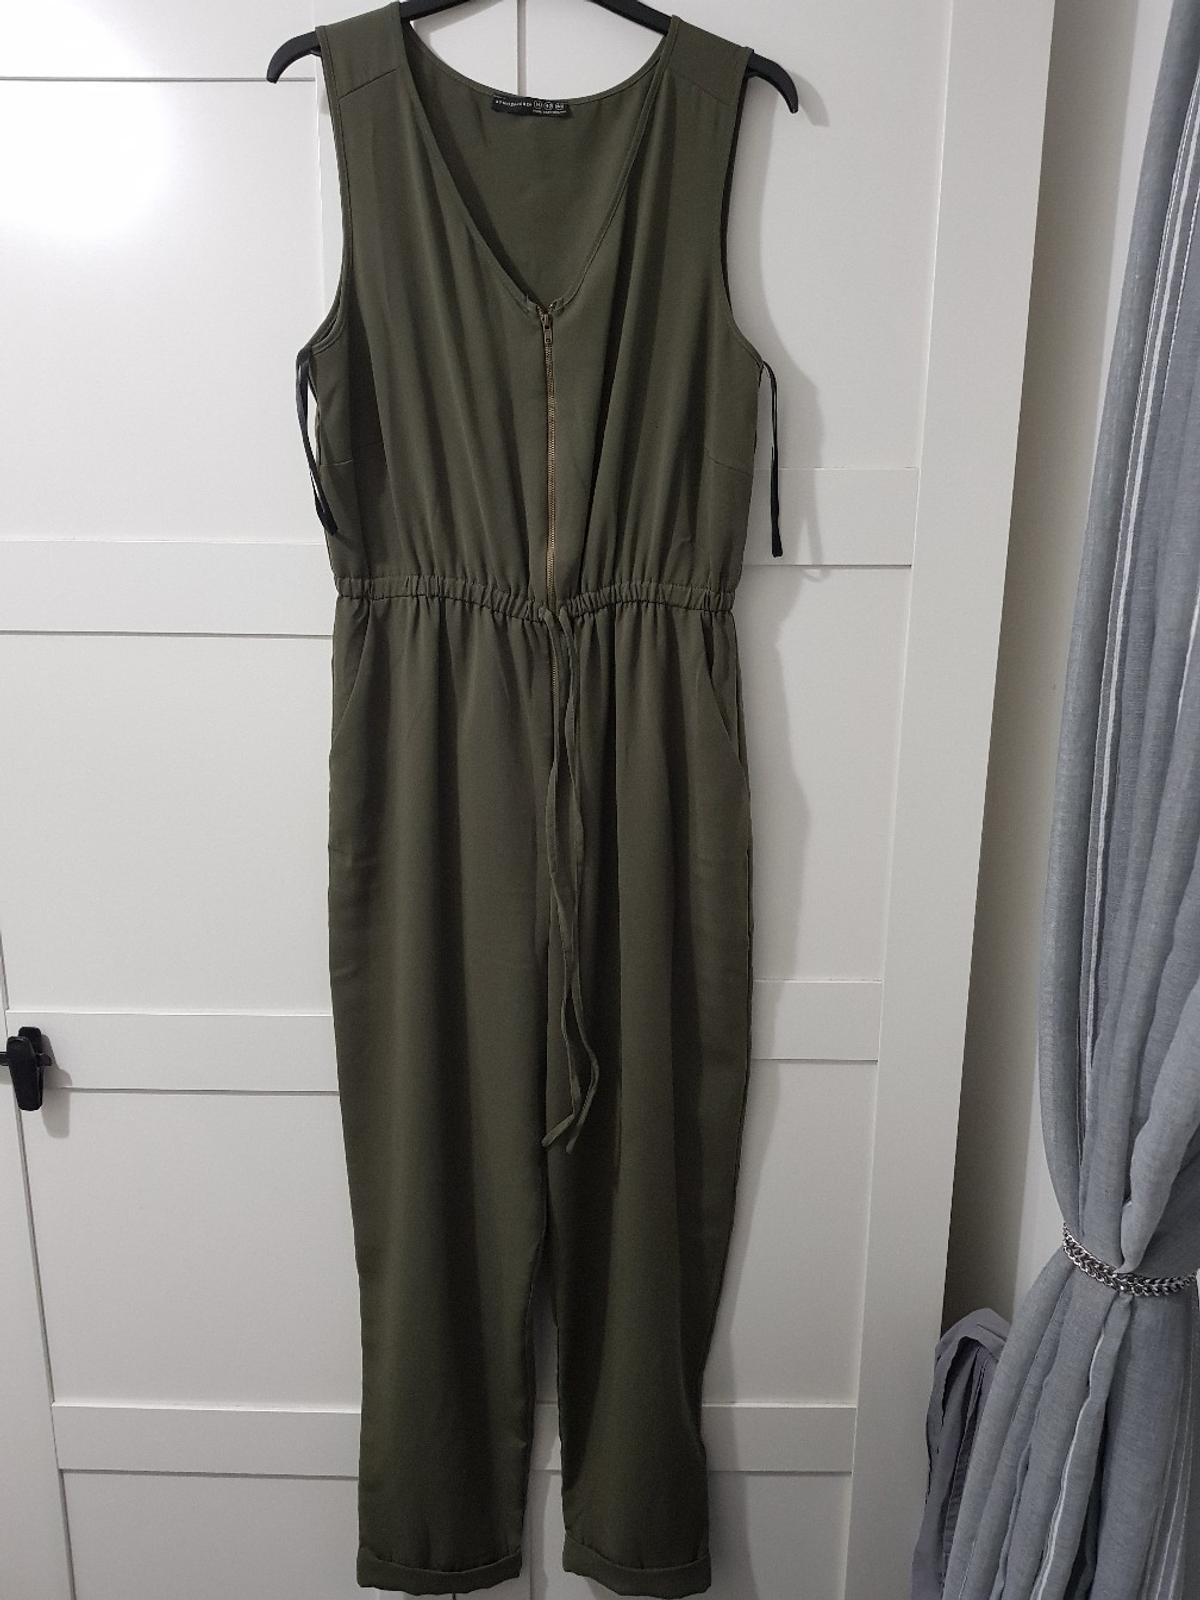 green...size 14...from primark